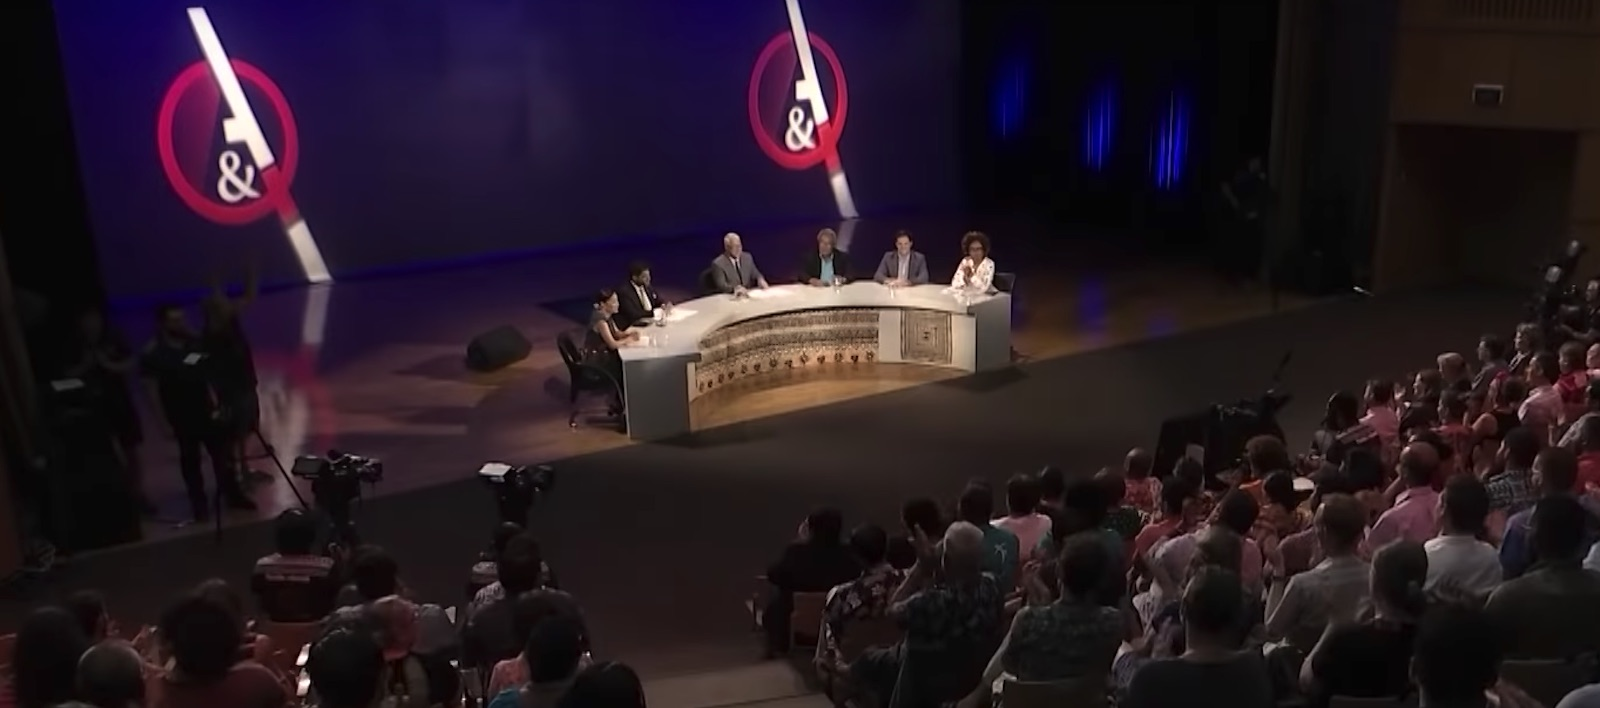 A must-watch for political junkies, ABC's Q&A broadcasts an episode from Fiji on 2 December